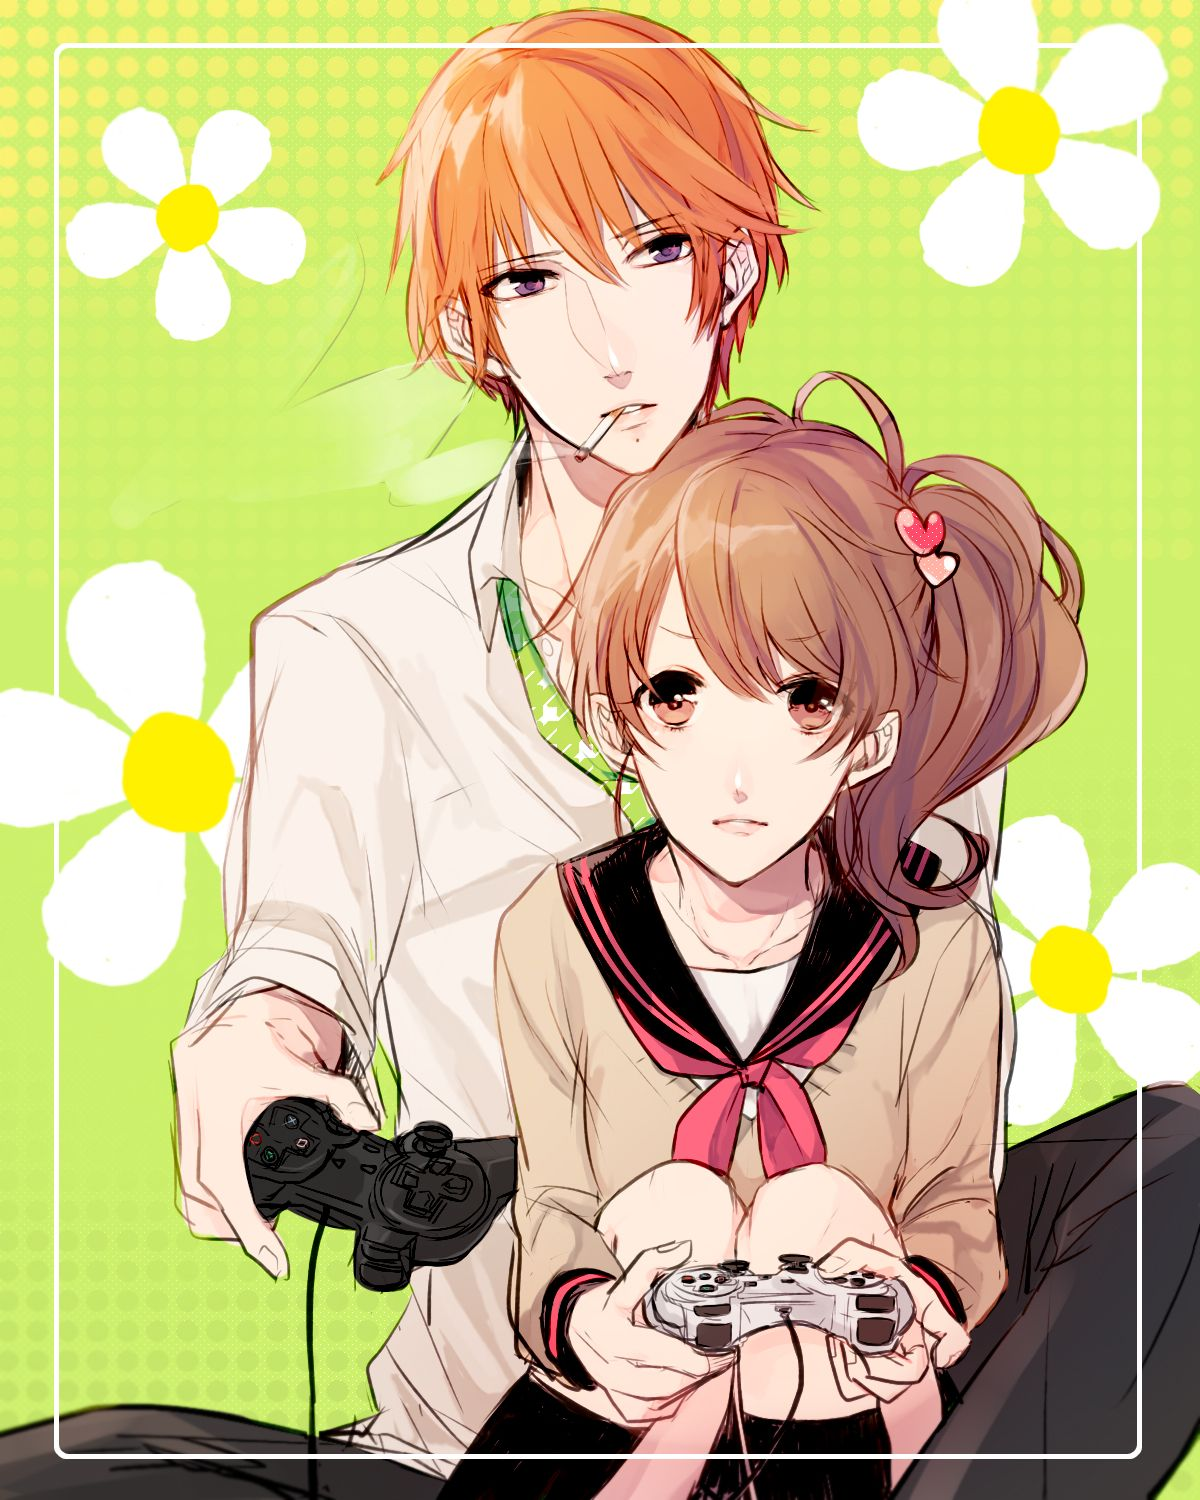 BROTHERS CONFLICT/1574562 Brothers conflict, Anime